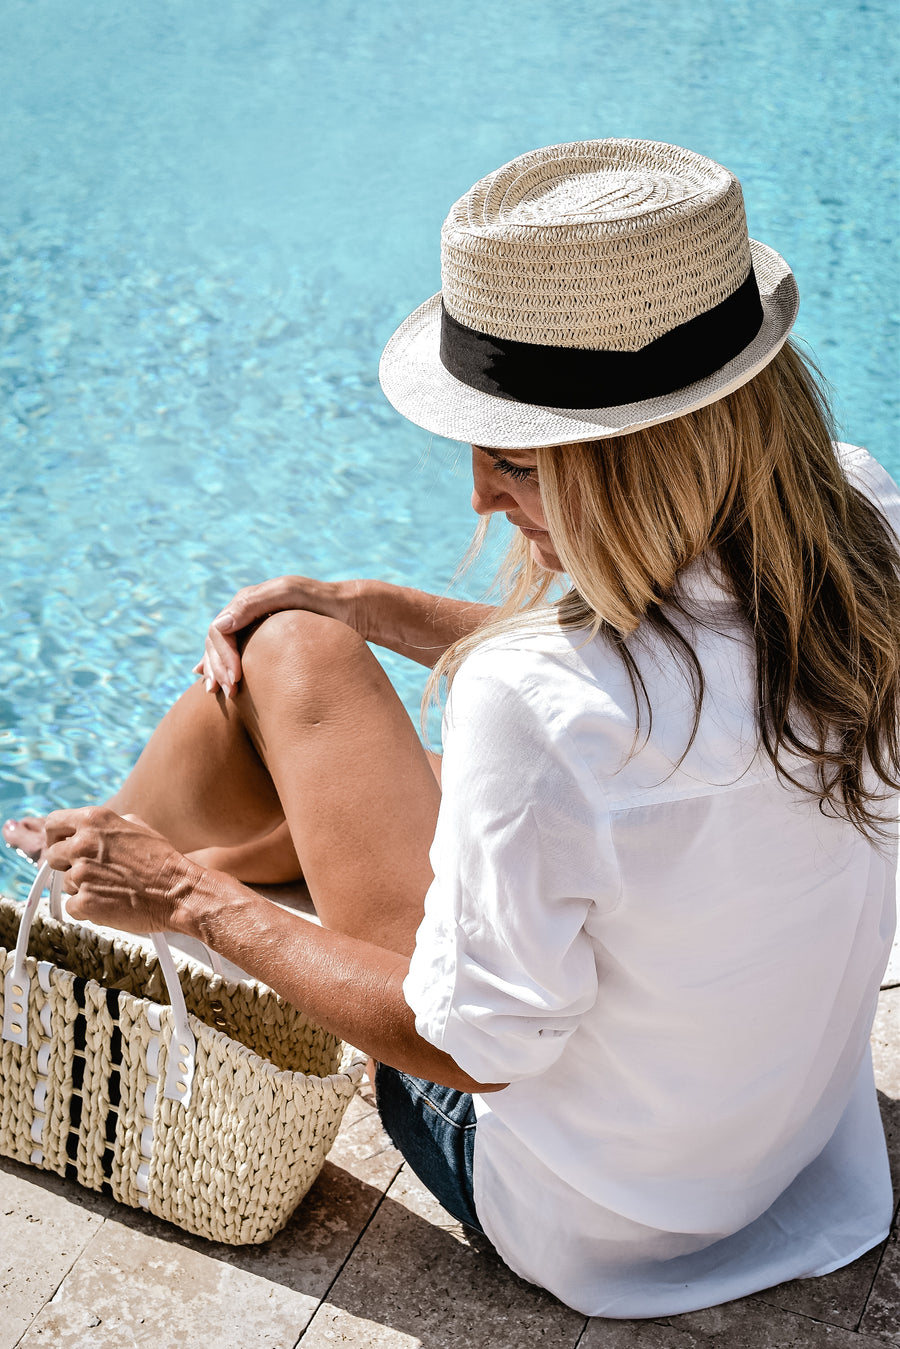 Model sitting by pool, wearing fedora hat with black grosgrain band and holding small straw tote with white leather handles.